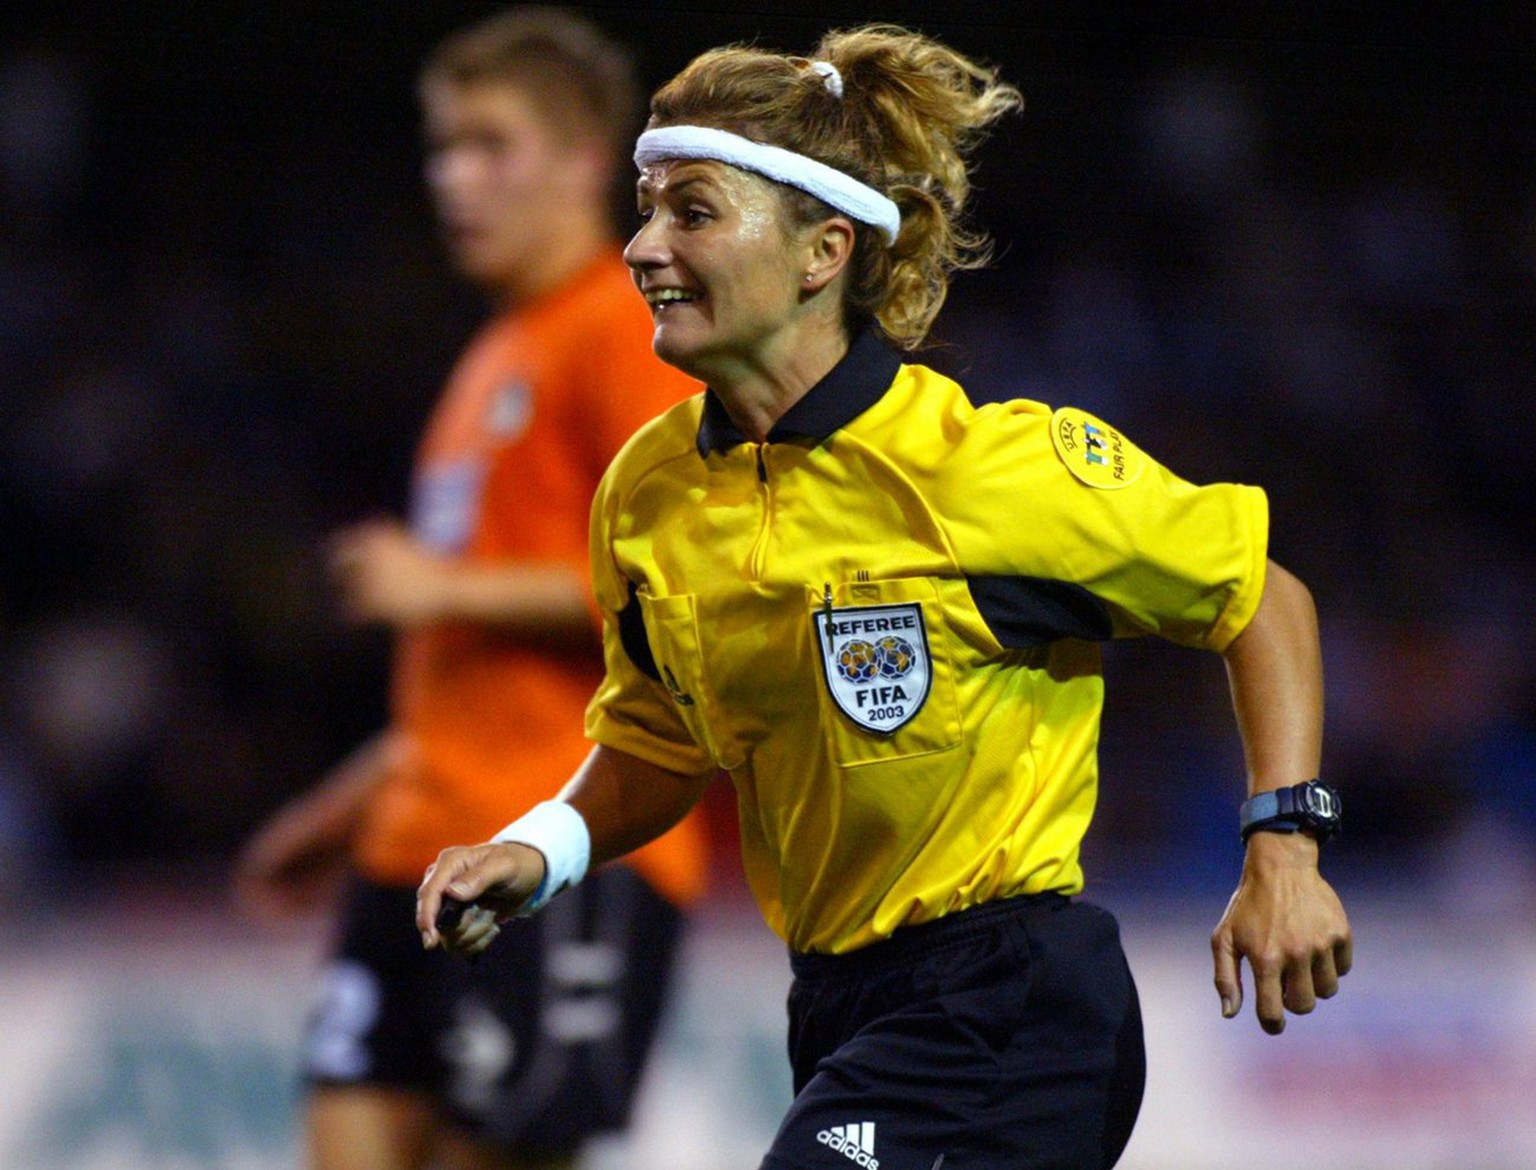 Swiss referee Nicole Petignat in action during the UEFA Cup qualifying round 1st leg soccer match of AIK Solna vs Fylkir from Iceland in Stockholm, Thursday 14 August 2003. Petignat is the first female referee in an European UEFA soccer match. (KEYSTONE/EPA Photo  Pressens Bild/Jack Mikrut)